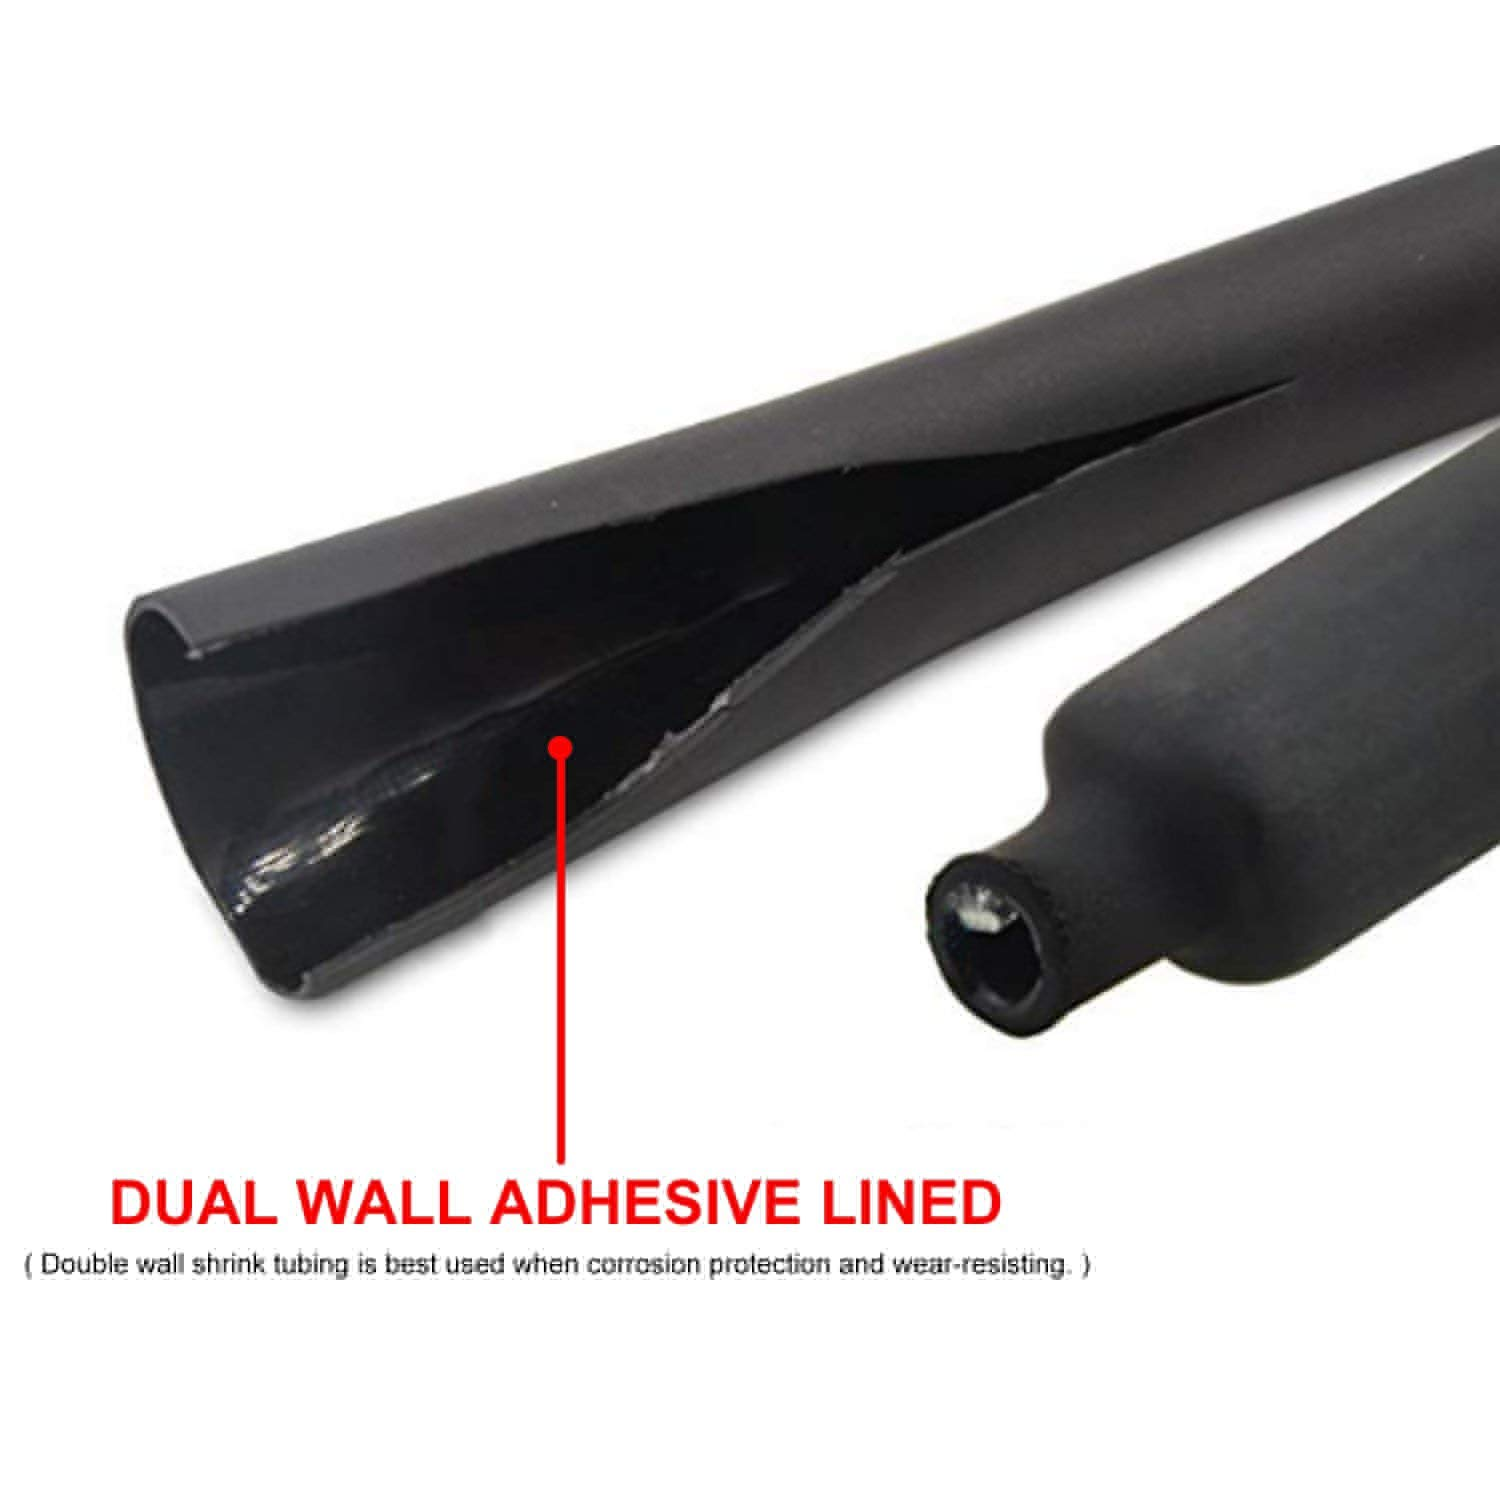 5FT 5//8 Dia Heat Shrink Sealing Tubing Dual Wall 3:1 Adhesive Lined Electrical Device Insulation Flame Retardant Protection Wear-Resistant Black